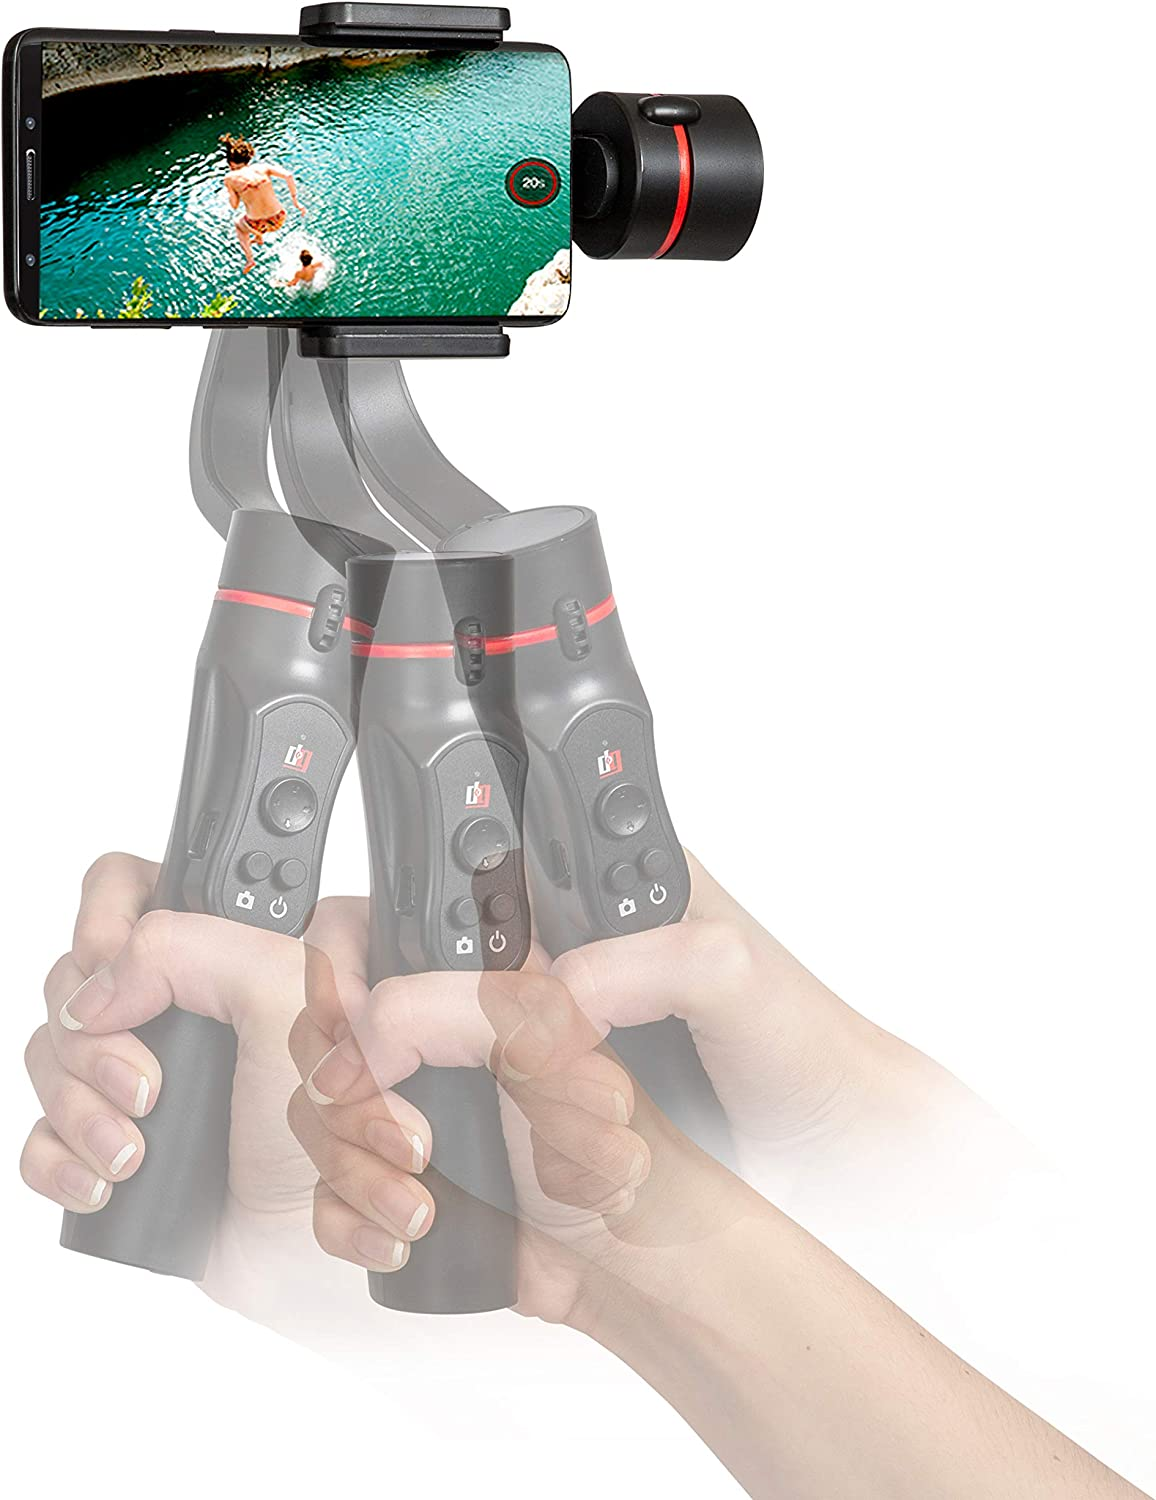 Deco Gear 3-Axis Handheld Cell Phone Gimbal Stabilizer iOS//Android Compatible GIM100BK